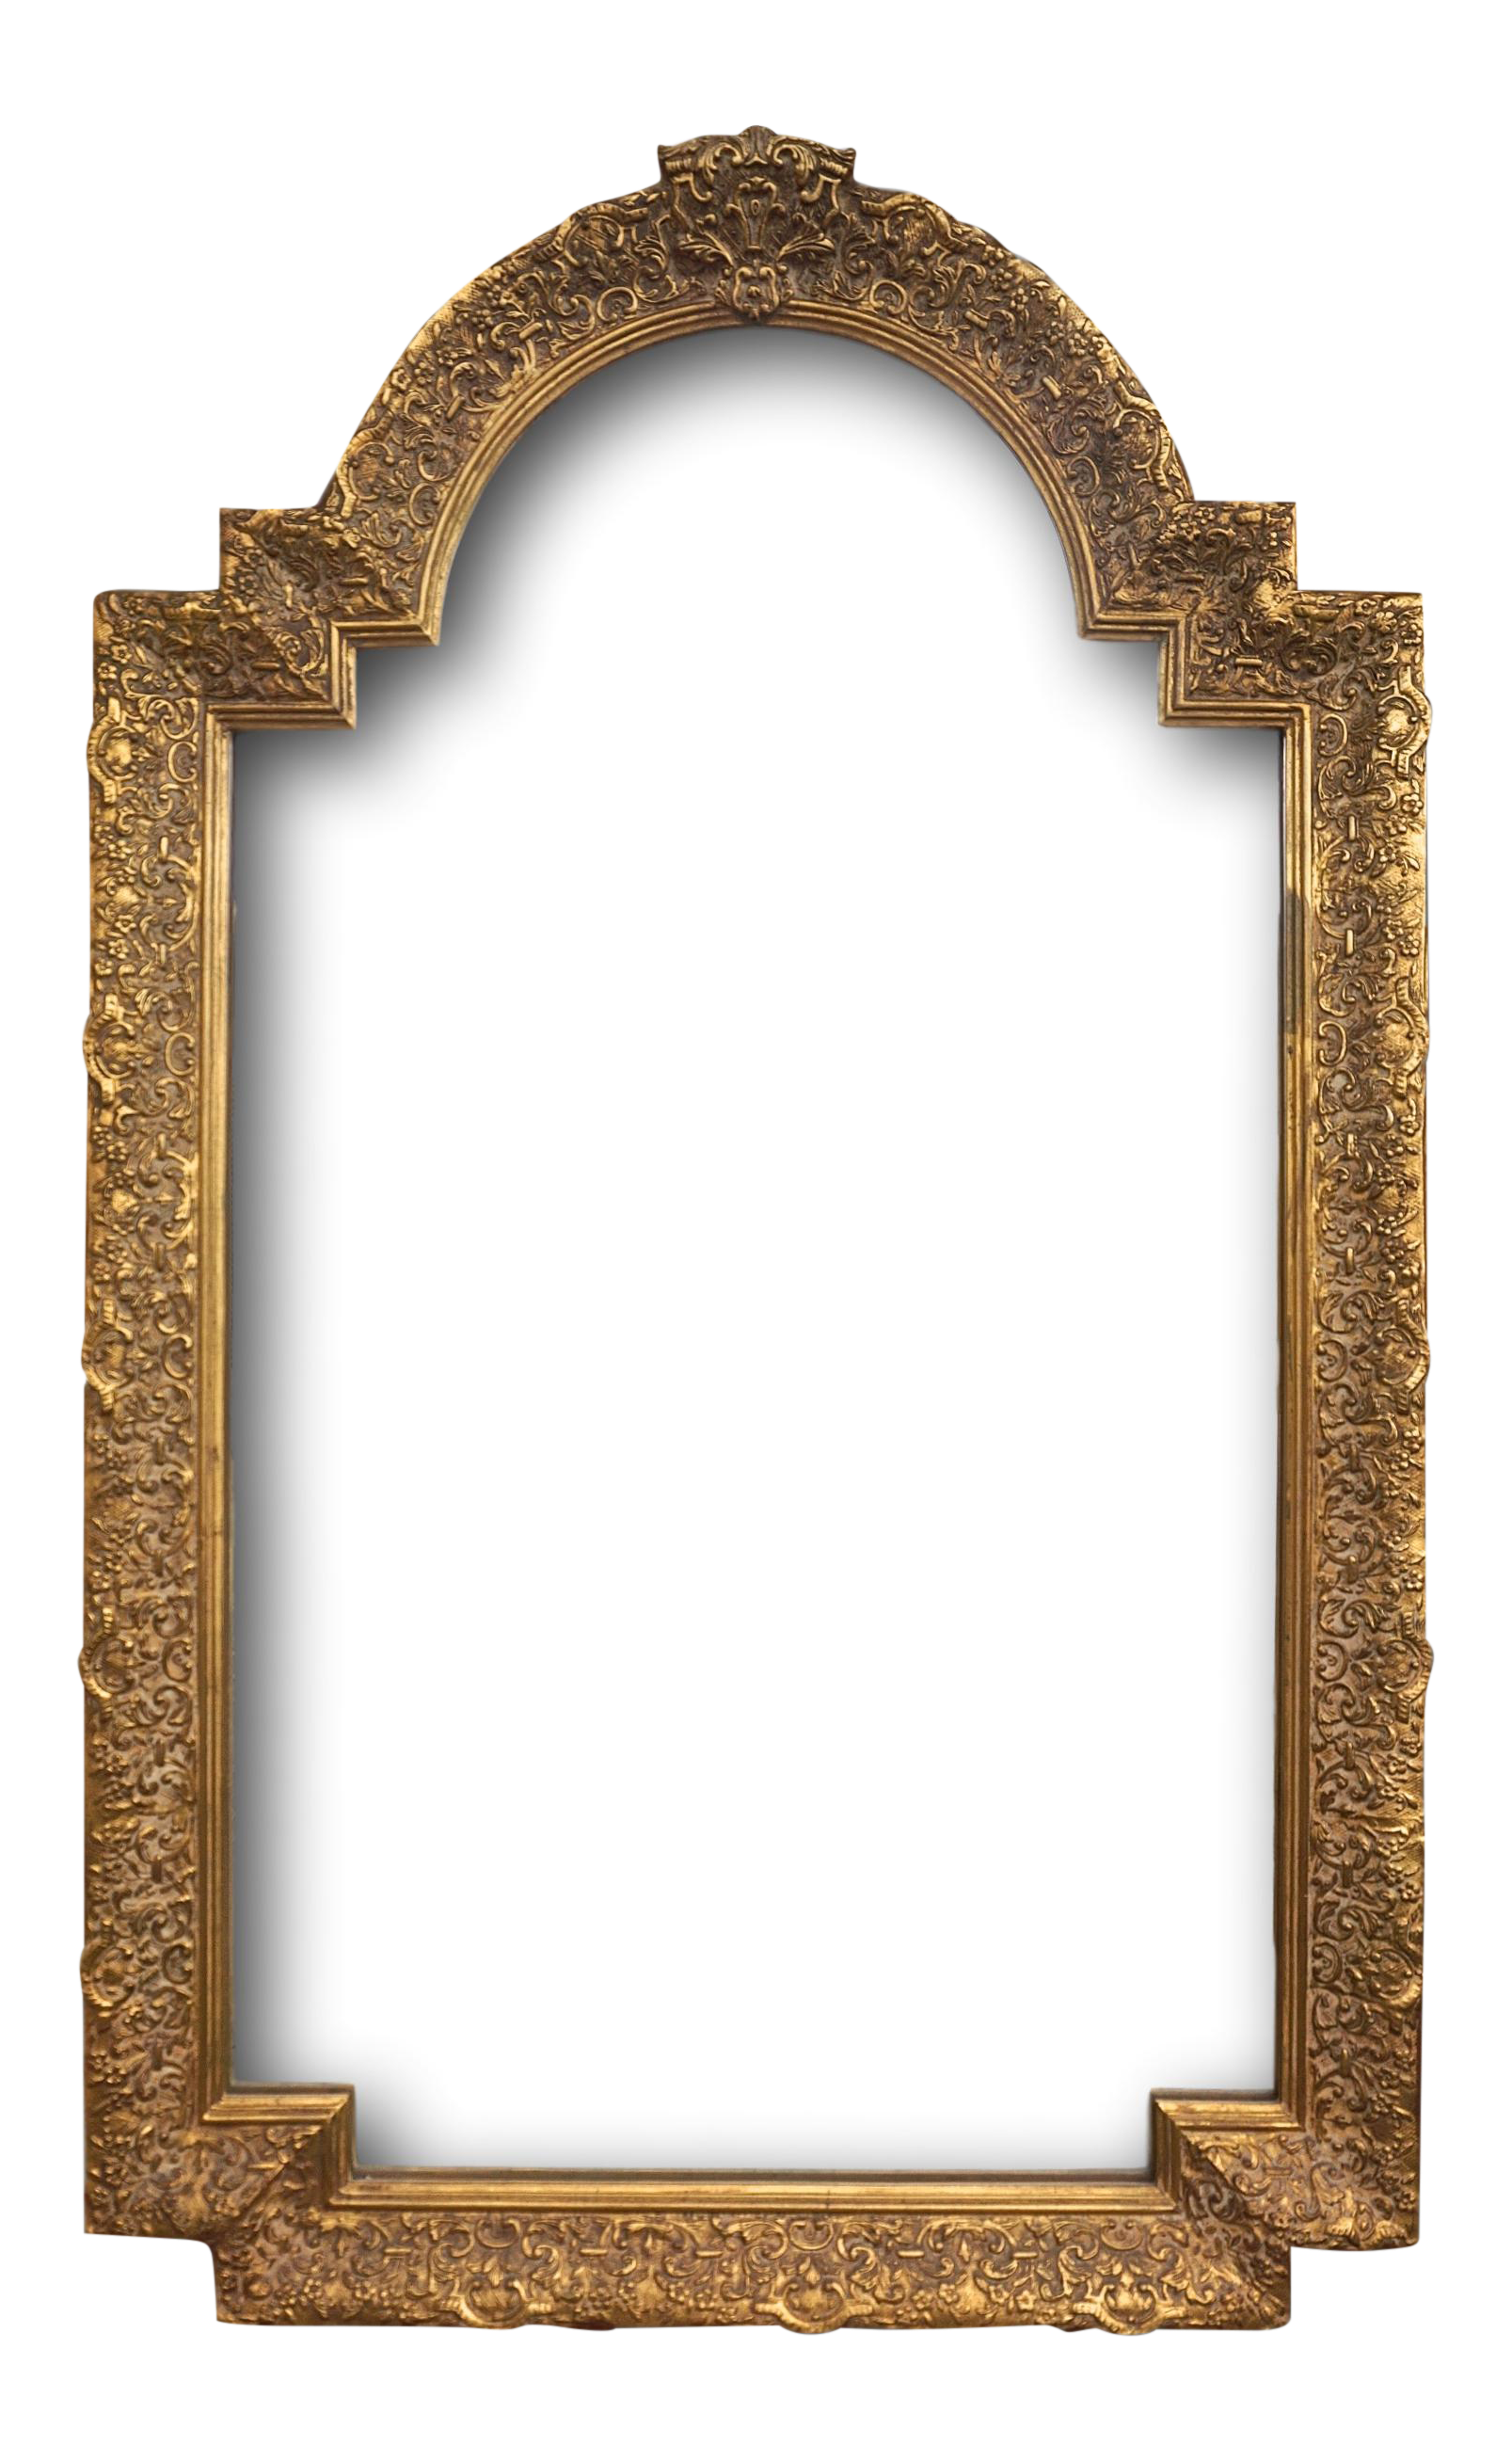 Large Gold Baroque Arched Mirror | Chairish